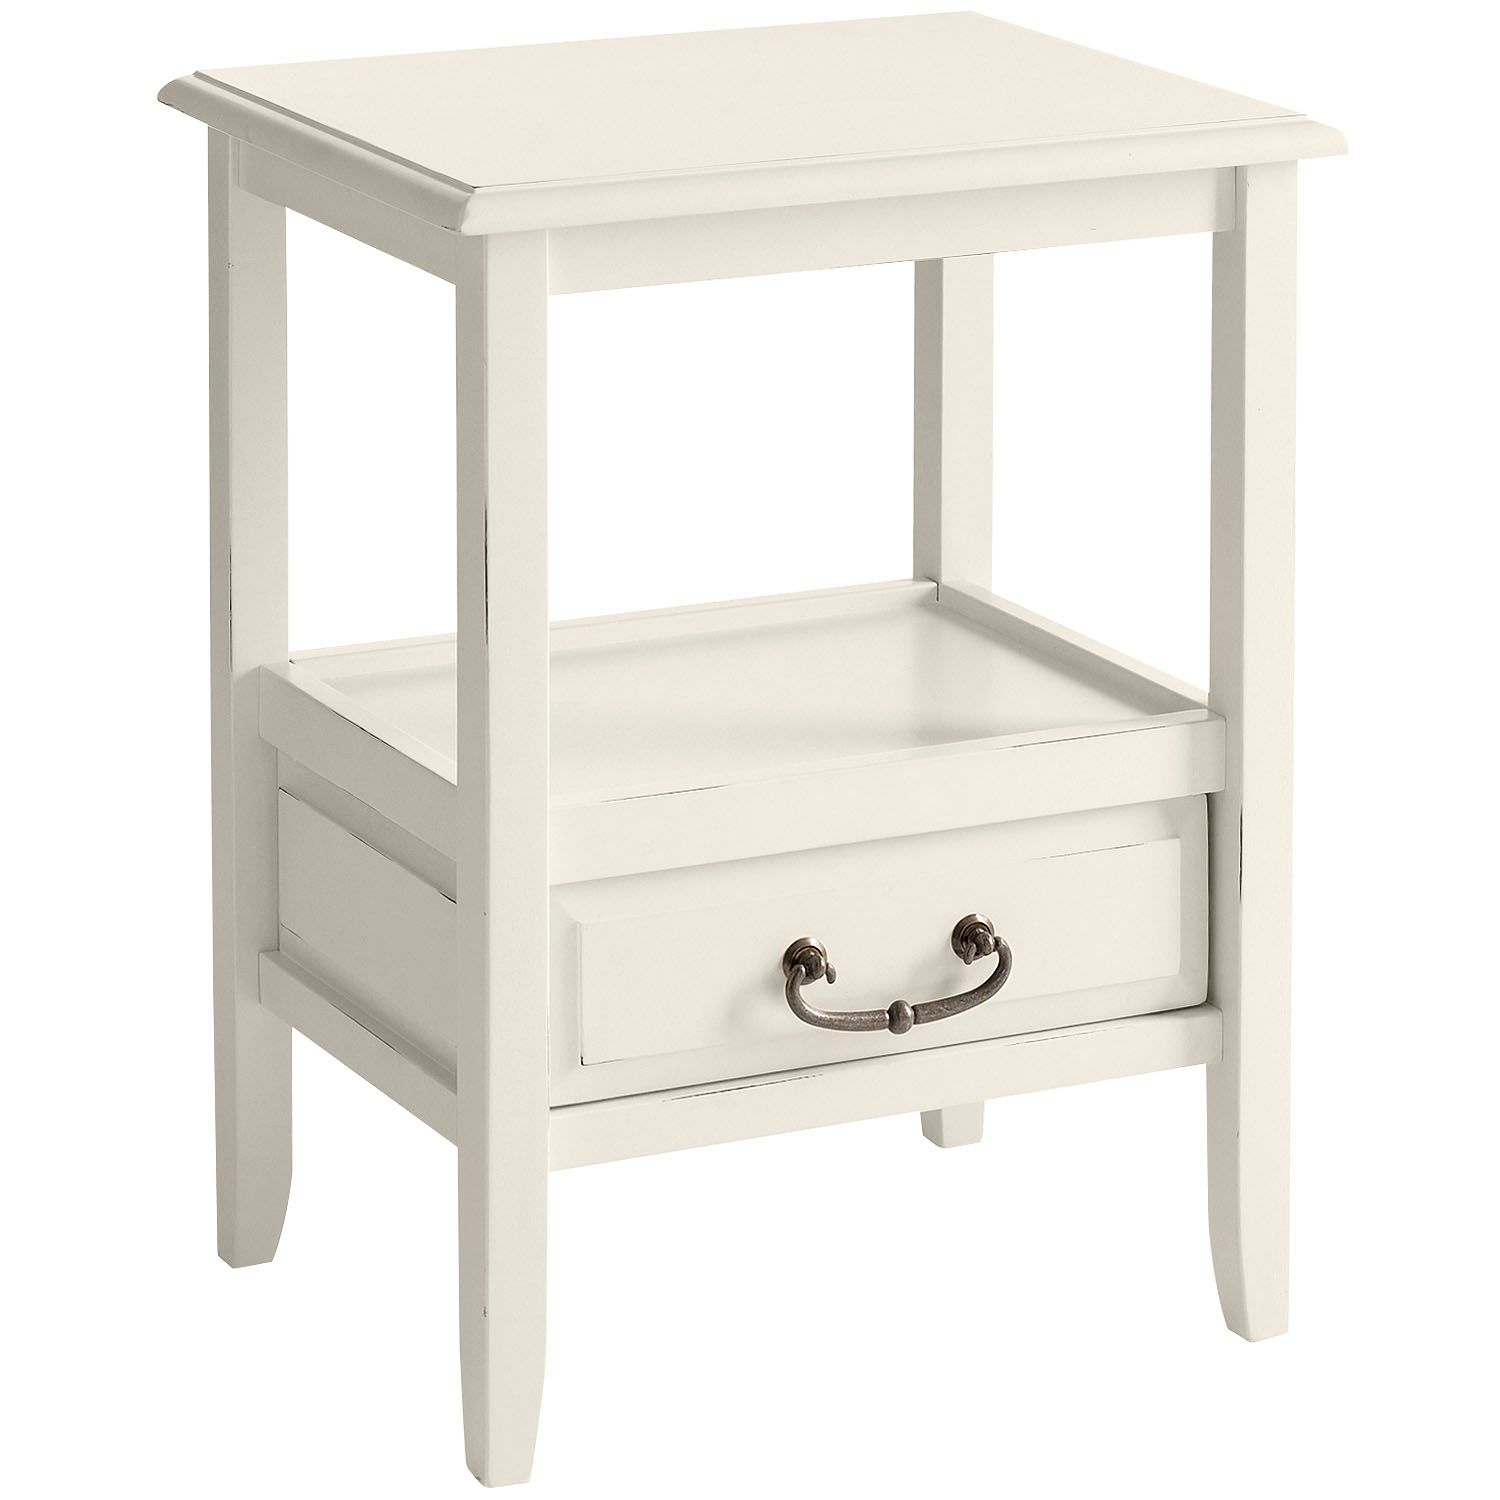 anywhere antique white end table with pull handles pier imports one accent collection floor standing lamps drop side lawn chair umbrella target circular pottery barn dishes lucite